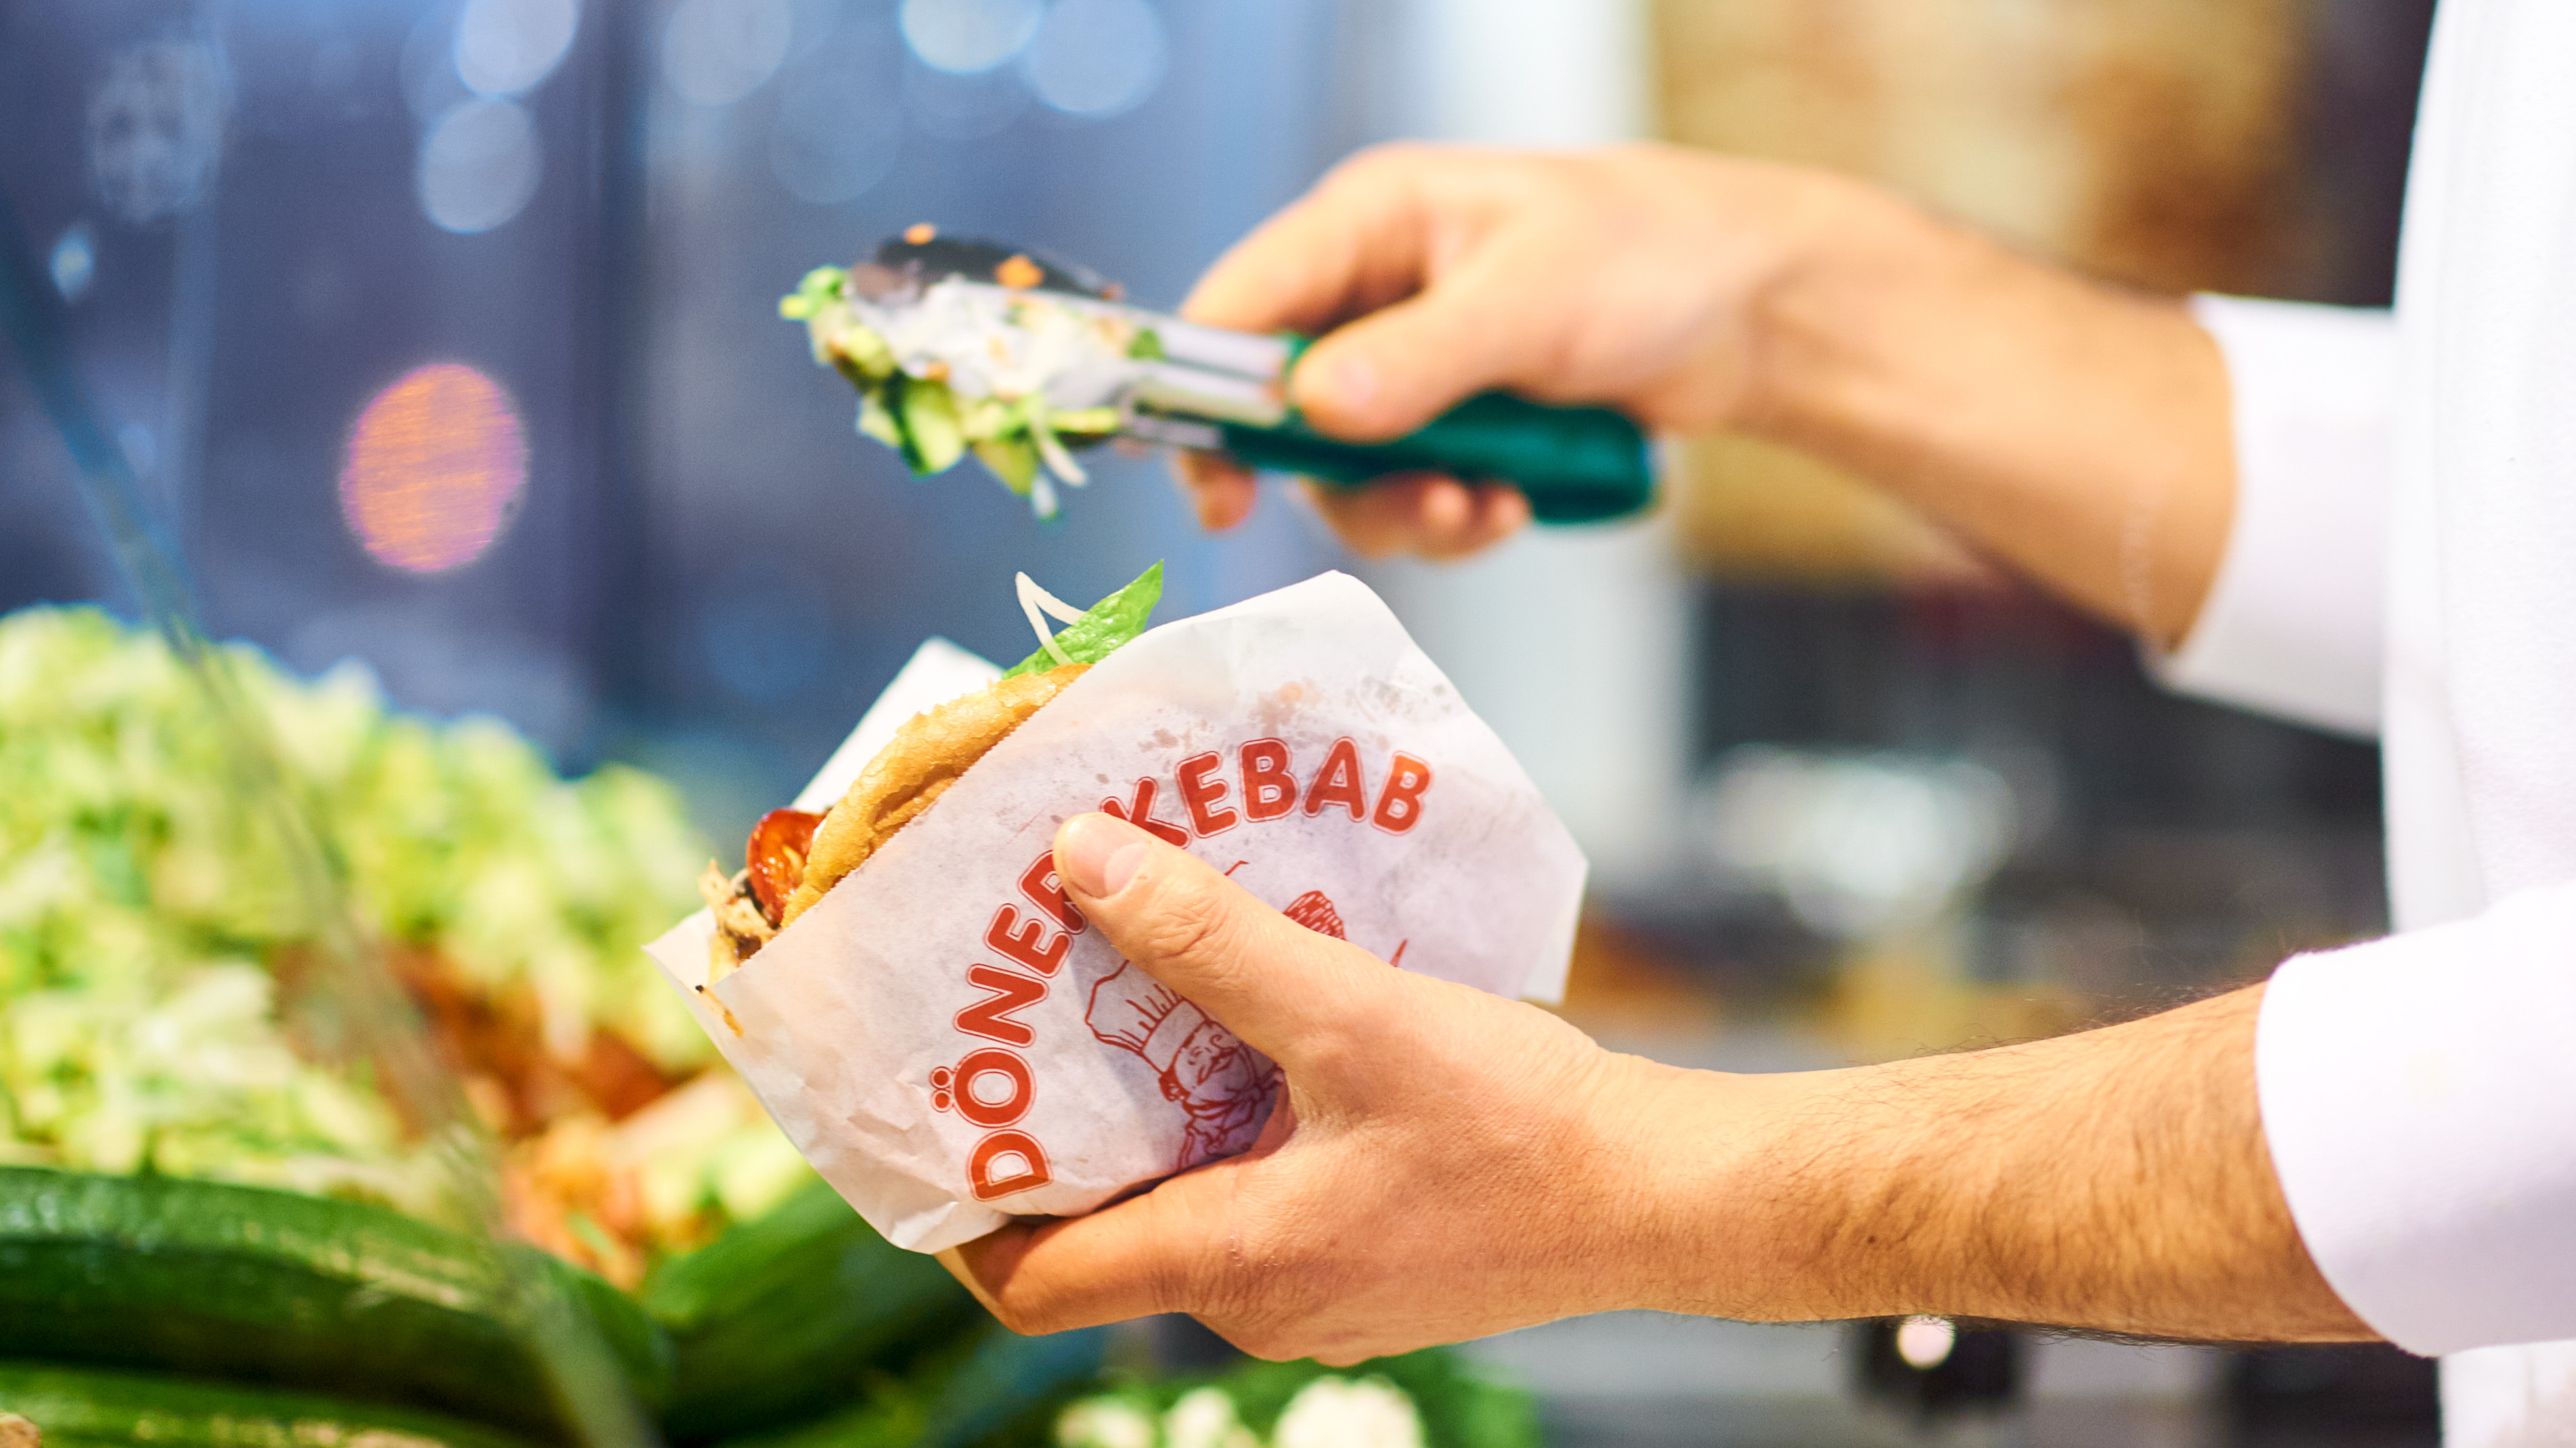 Uber Eats Is Giving Away Free Kebabs This Valentine's Day